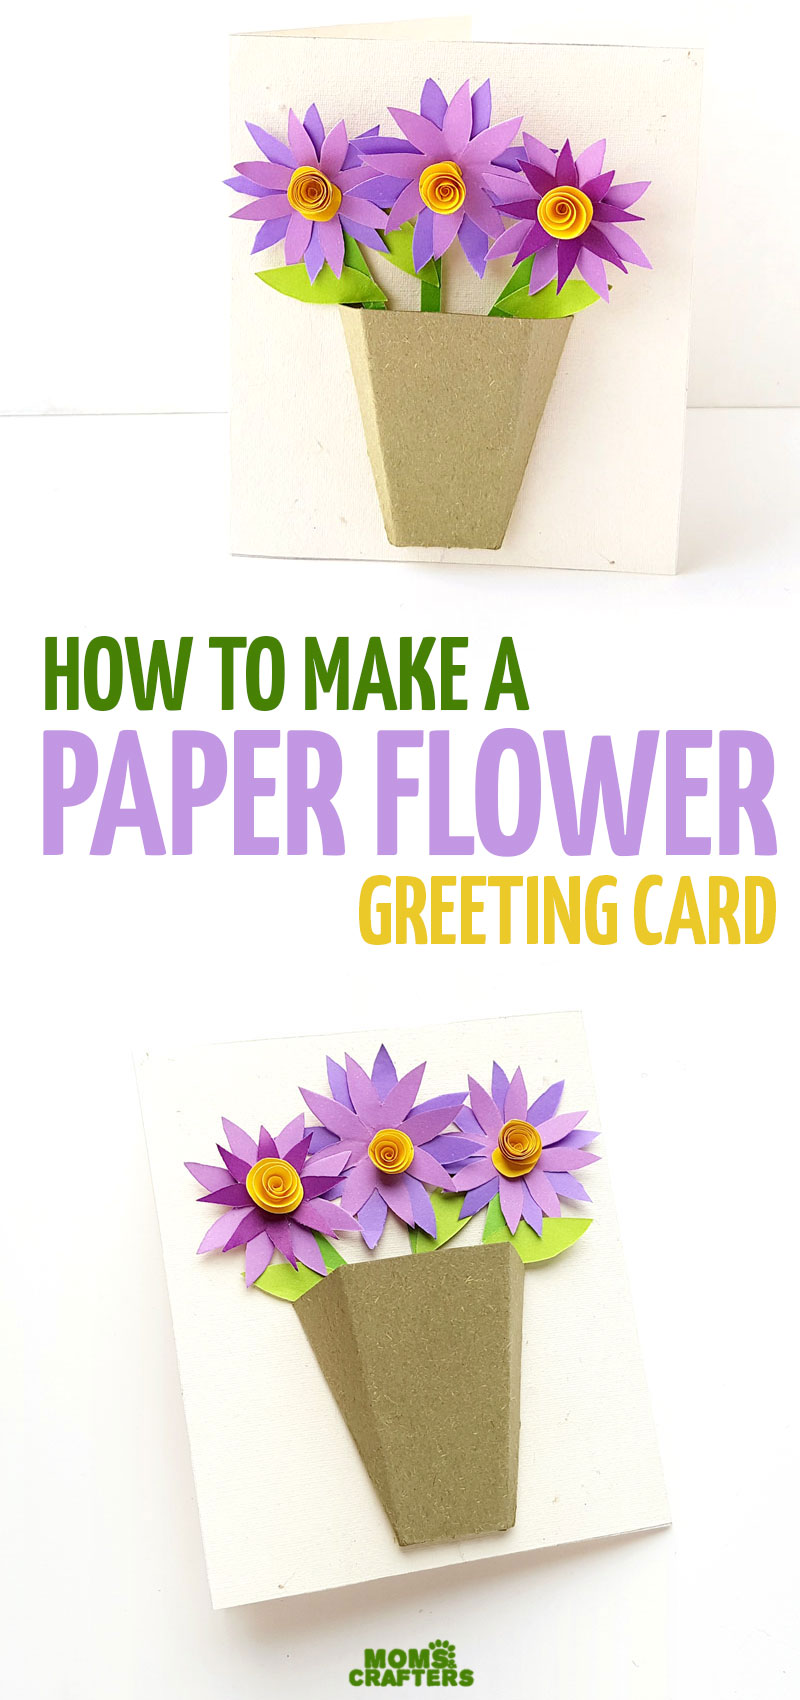 Make a DIY paper flower card with a 3D flower bouquet - a fun and easy paper craft for teens and tweens, for Spring, or for any time